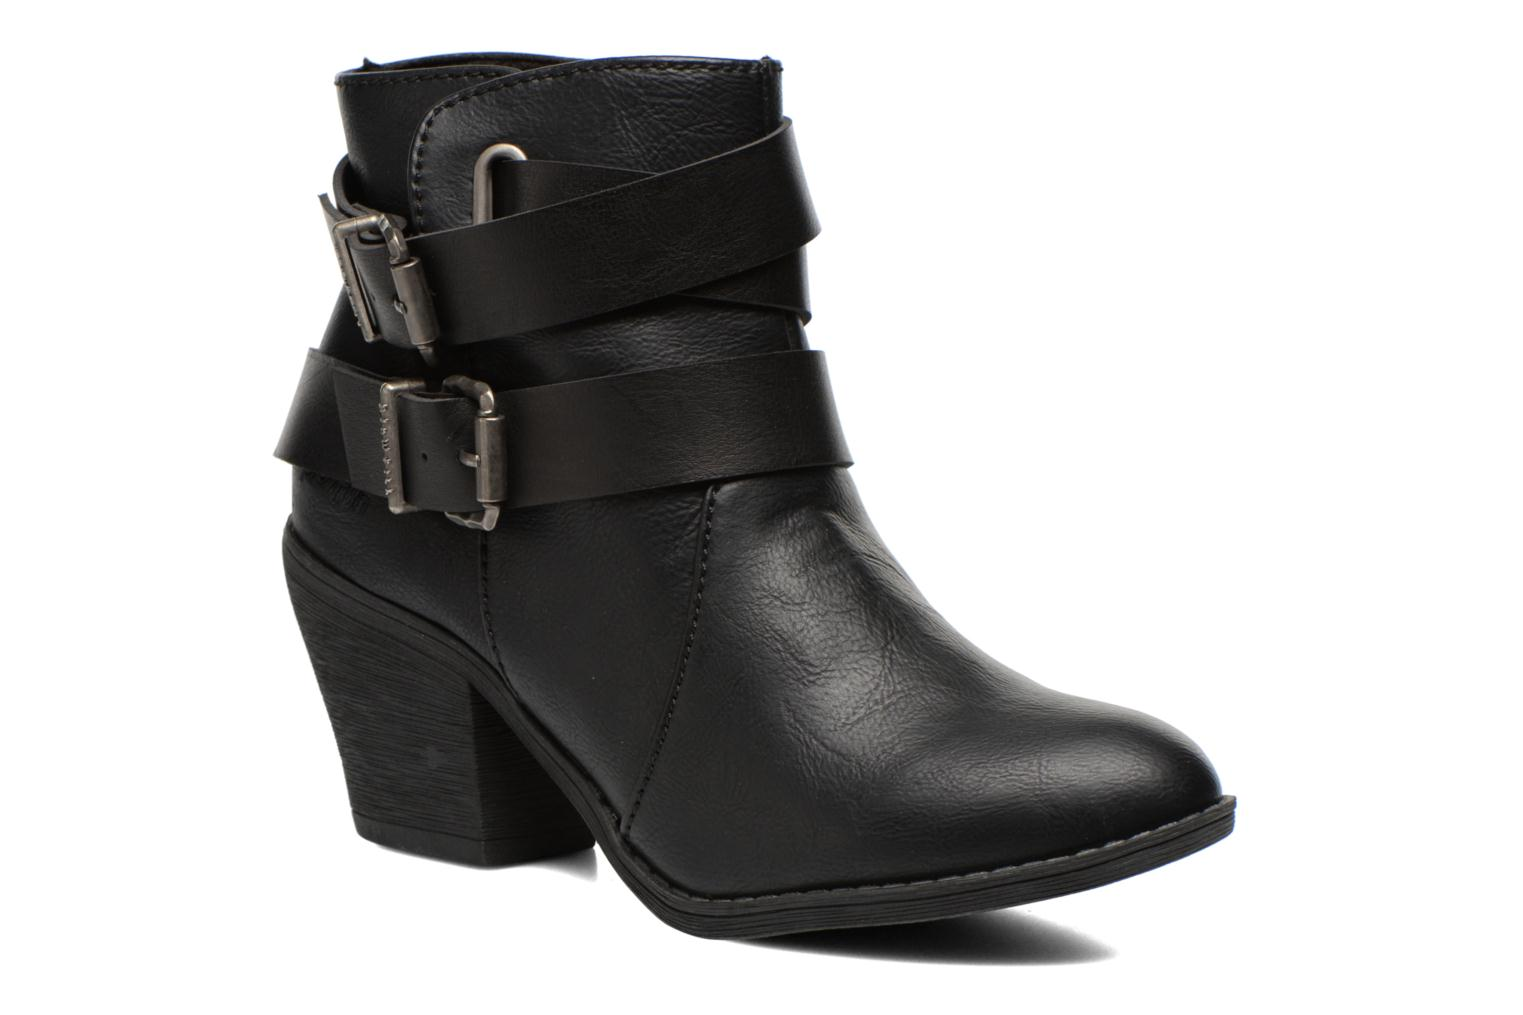 Bottines et boots Blowfish Sworn Noir vue détail/paire